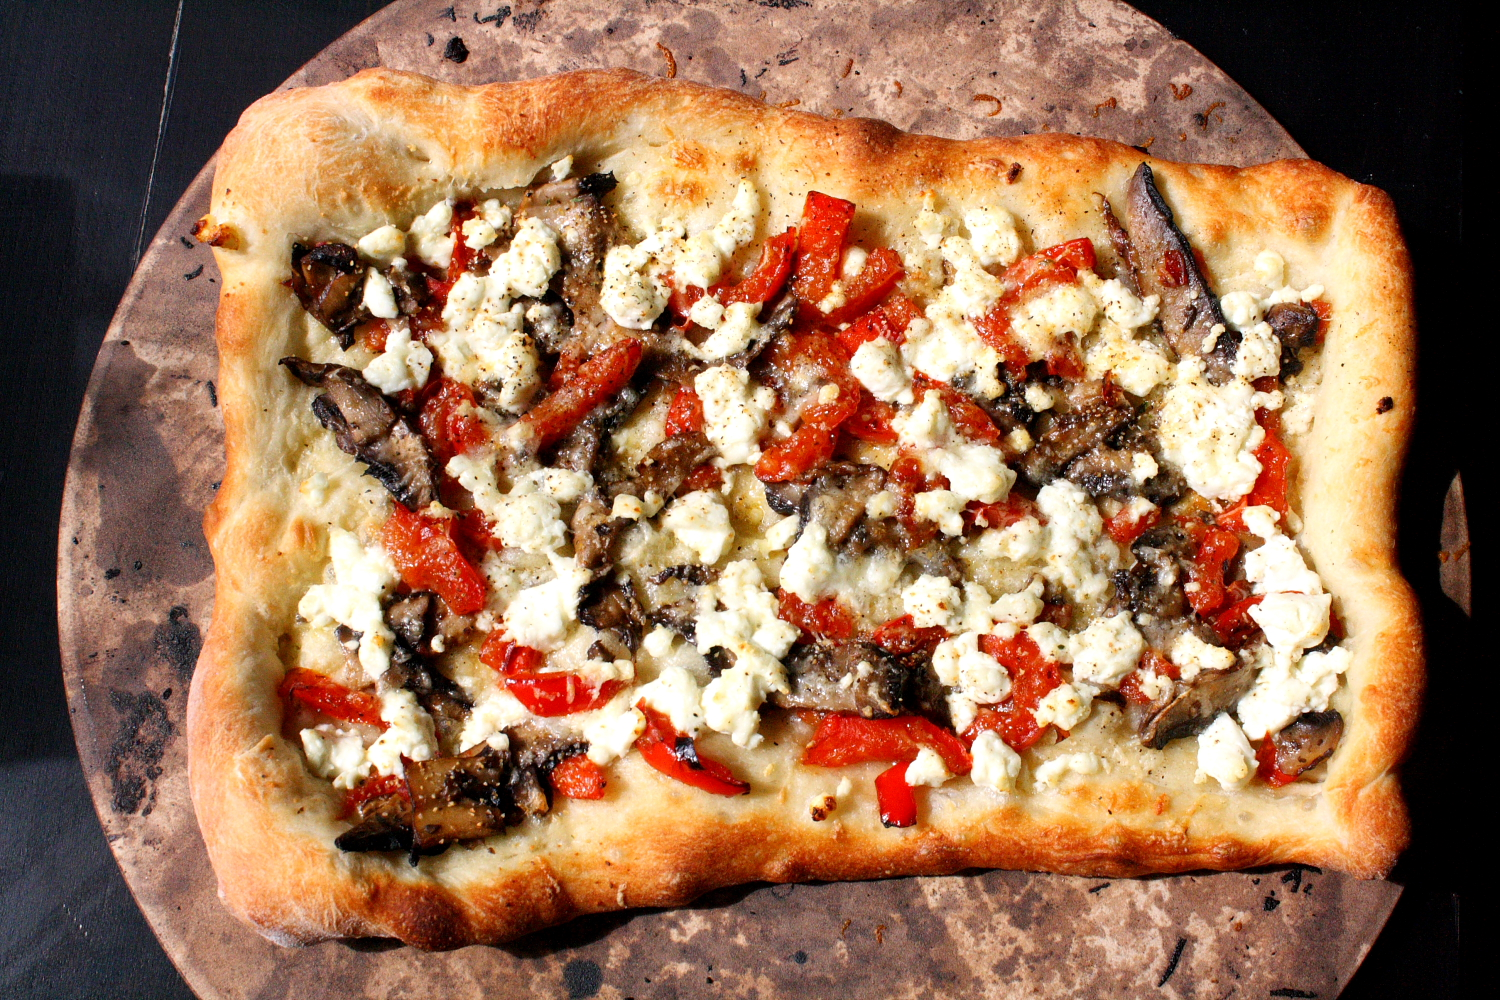 Red pepper portobello mushroom and goat cheese pizza recipe |